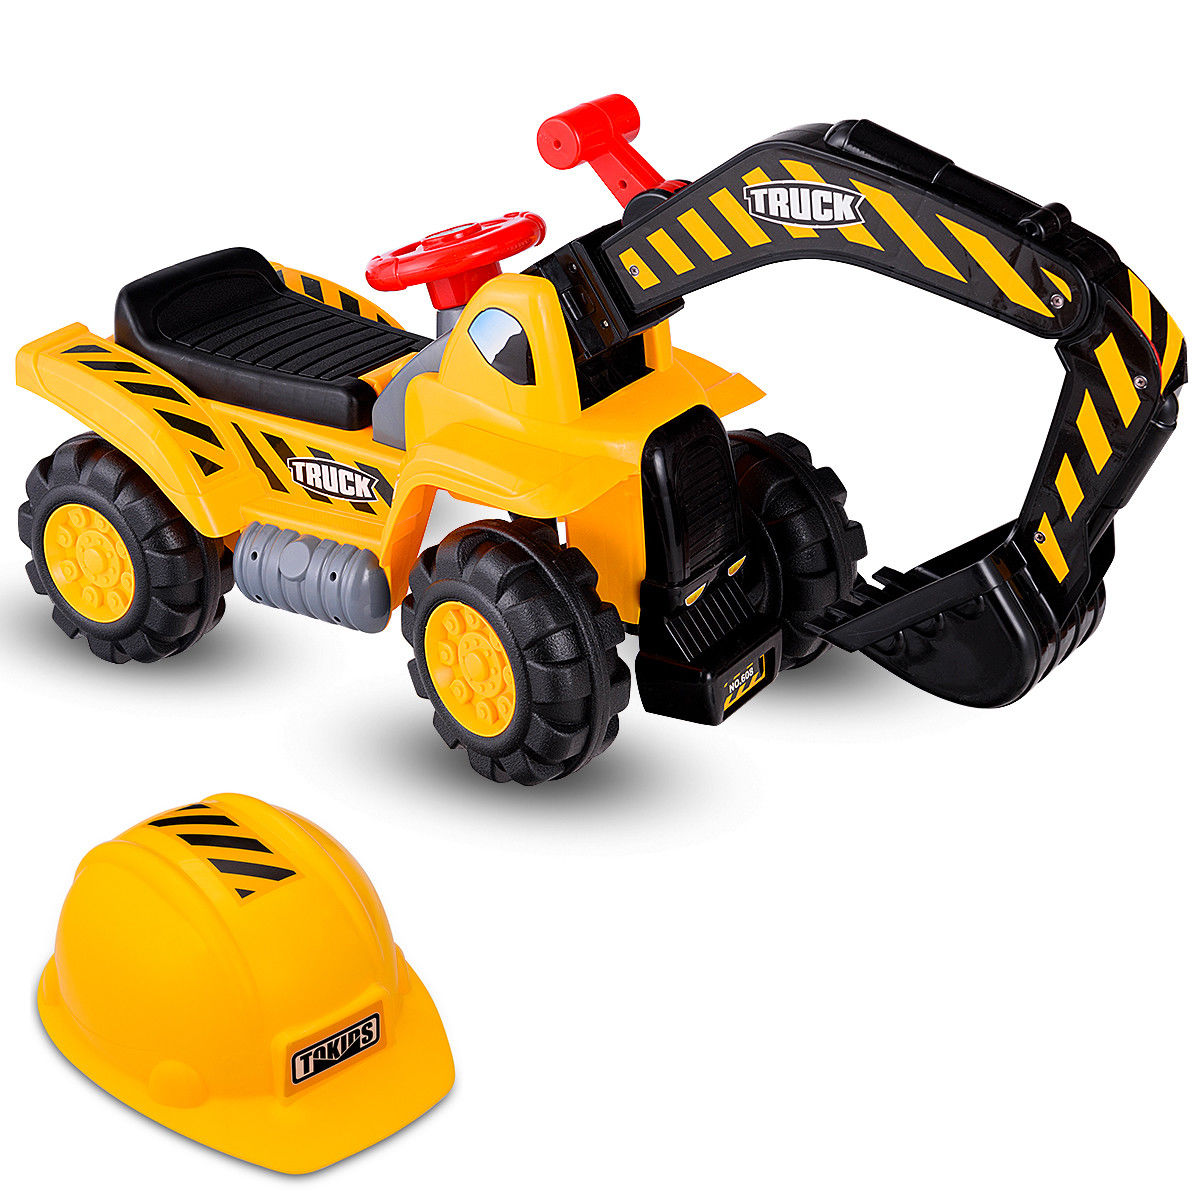 Costway Kids Toddler Ride On Excavator Digger Truck Scooter Seat Storage w/Sound&Helmet